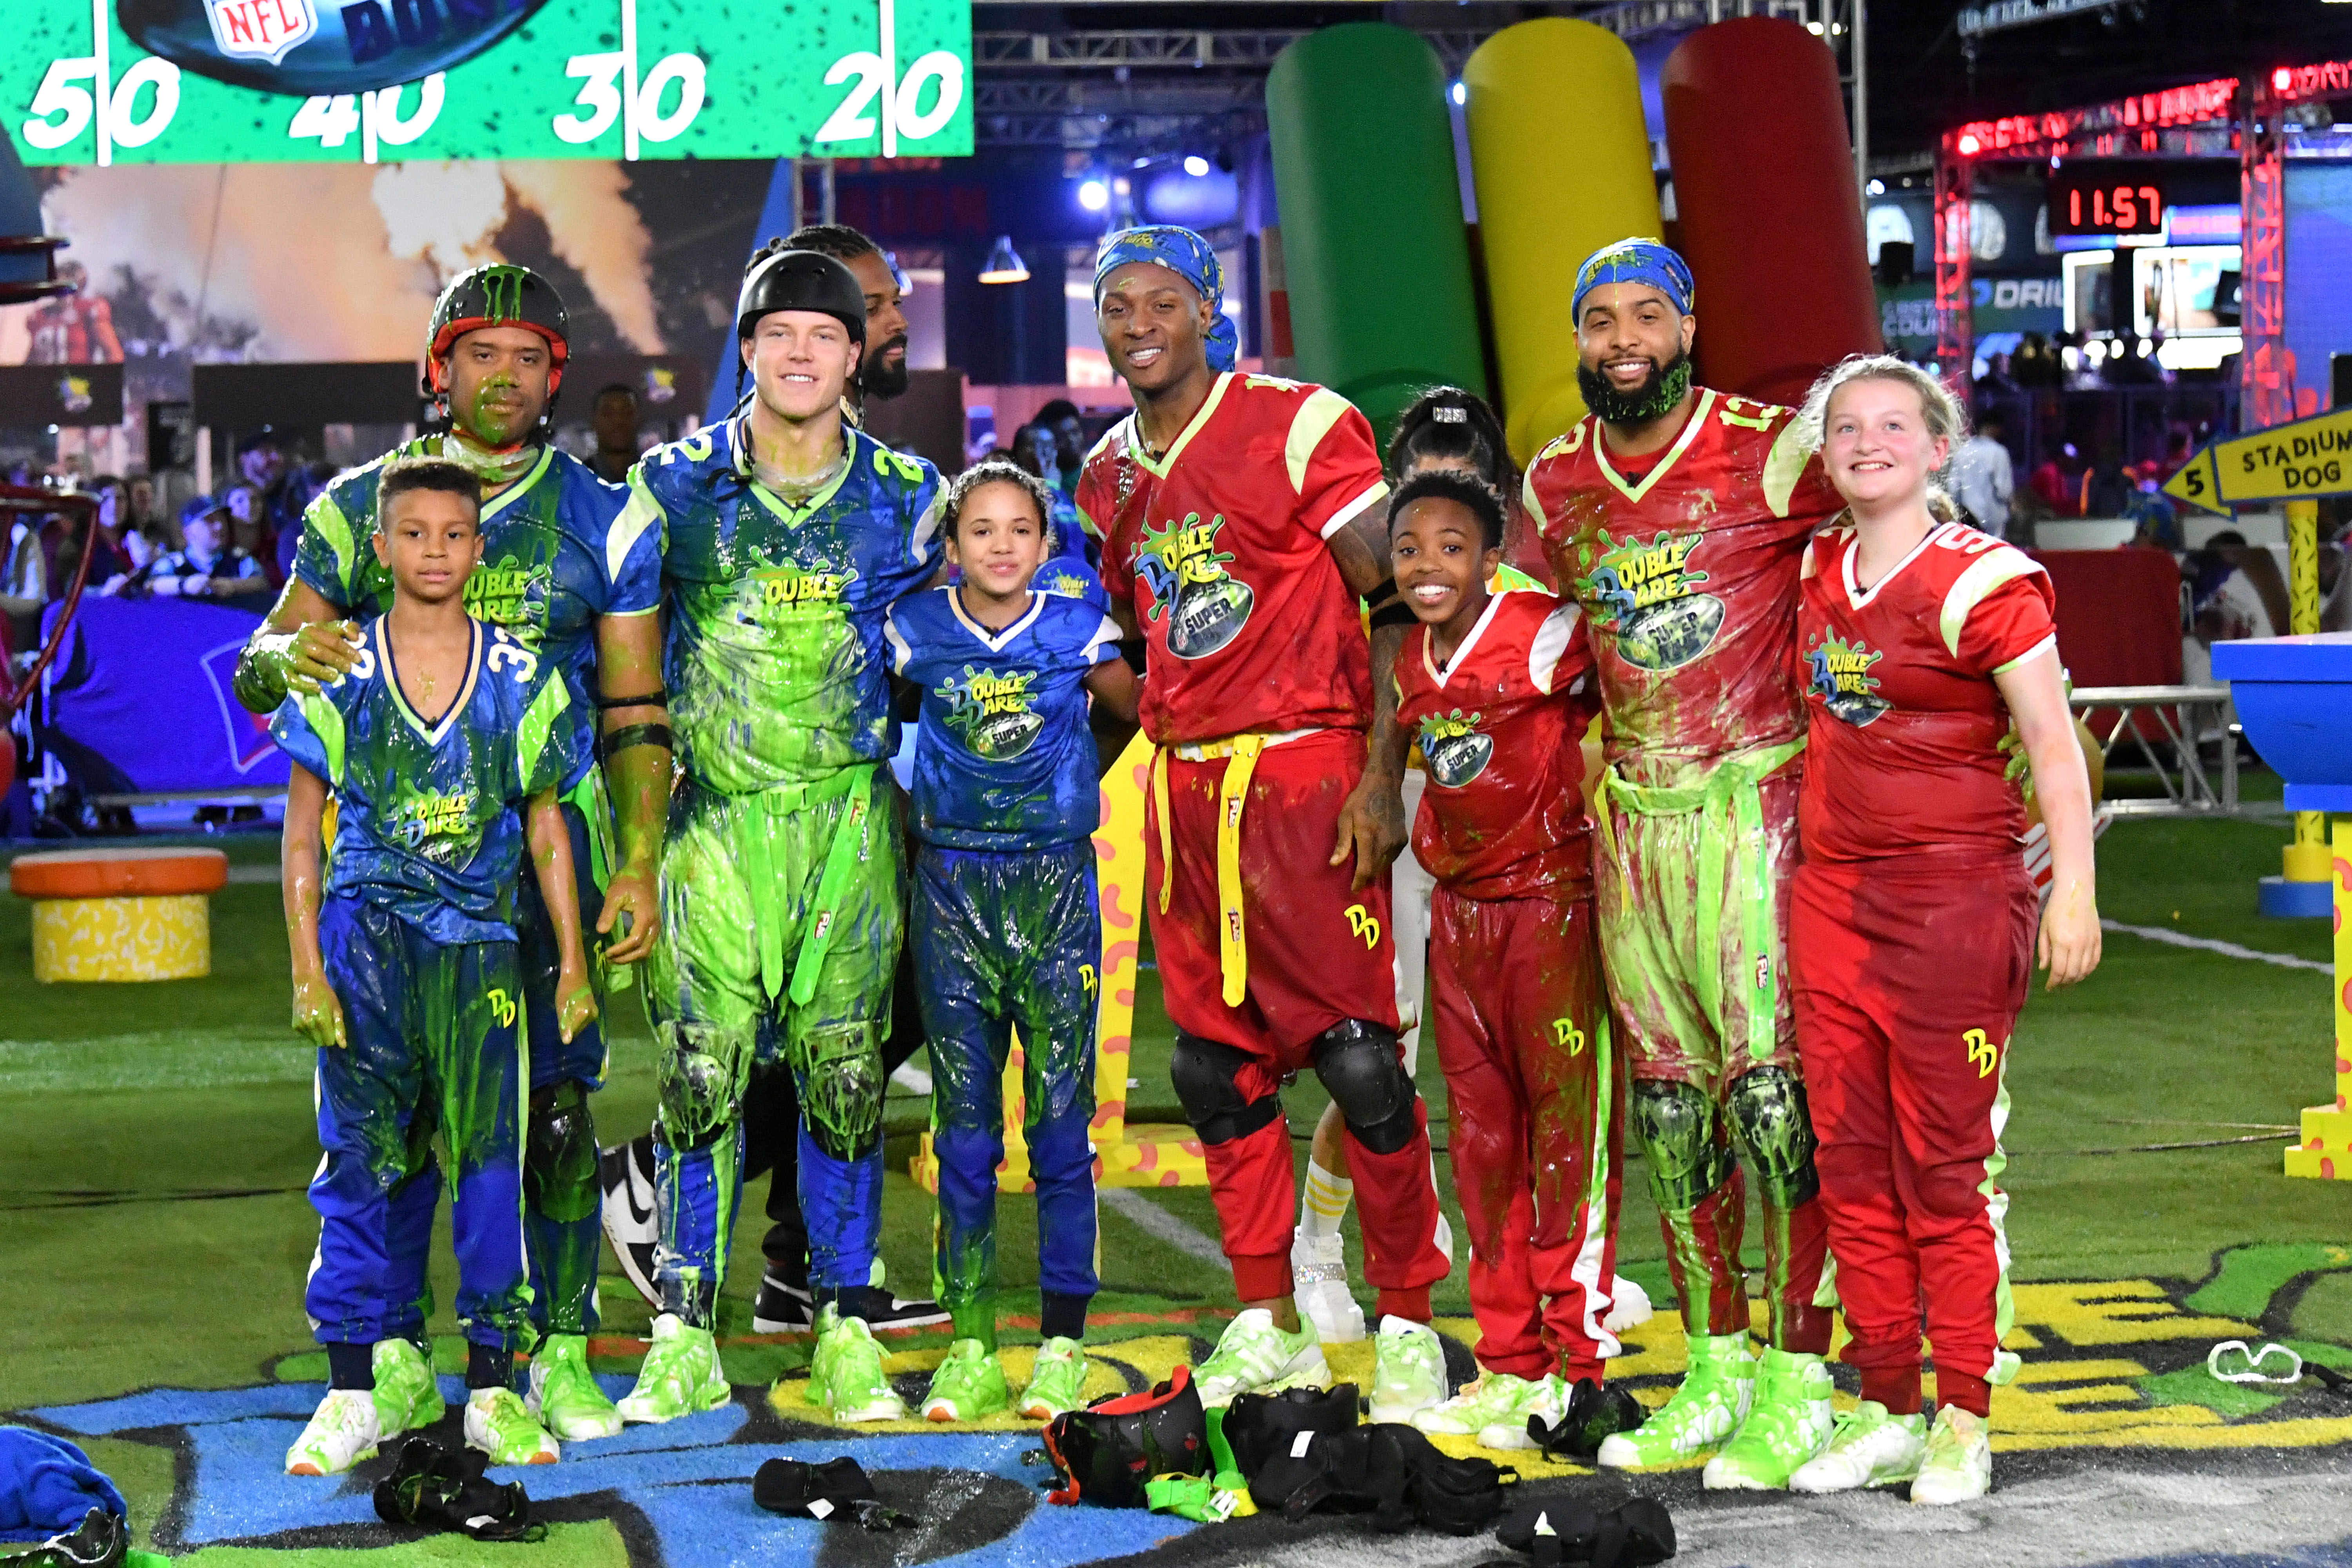 Nickelodeon's Double Dare at the Super Bowl